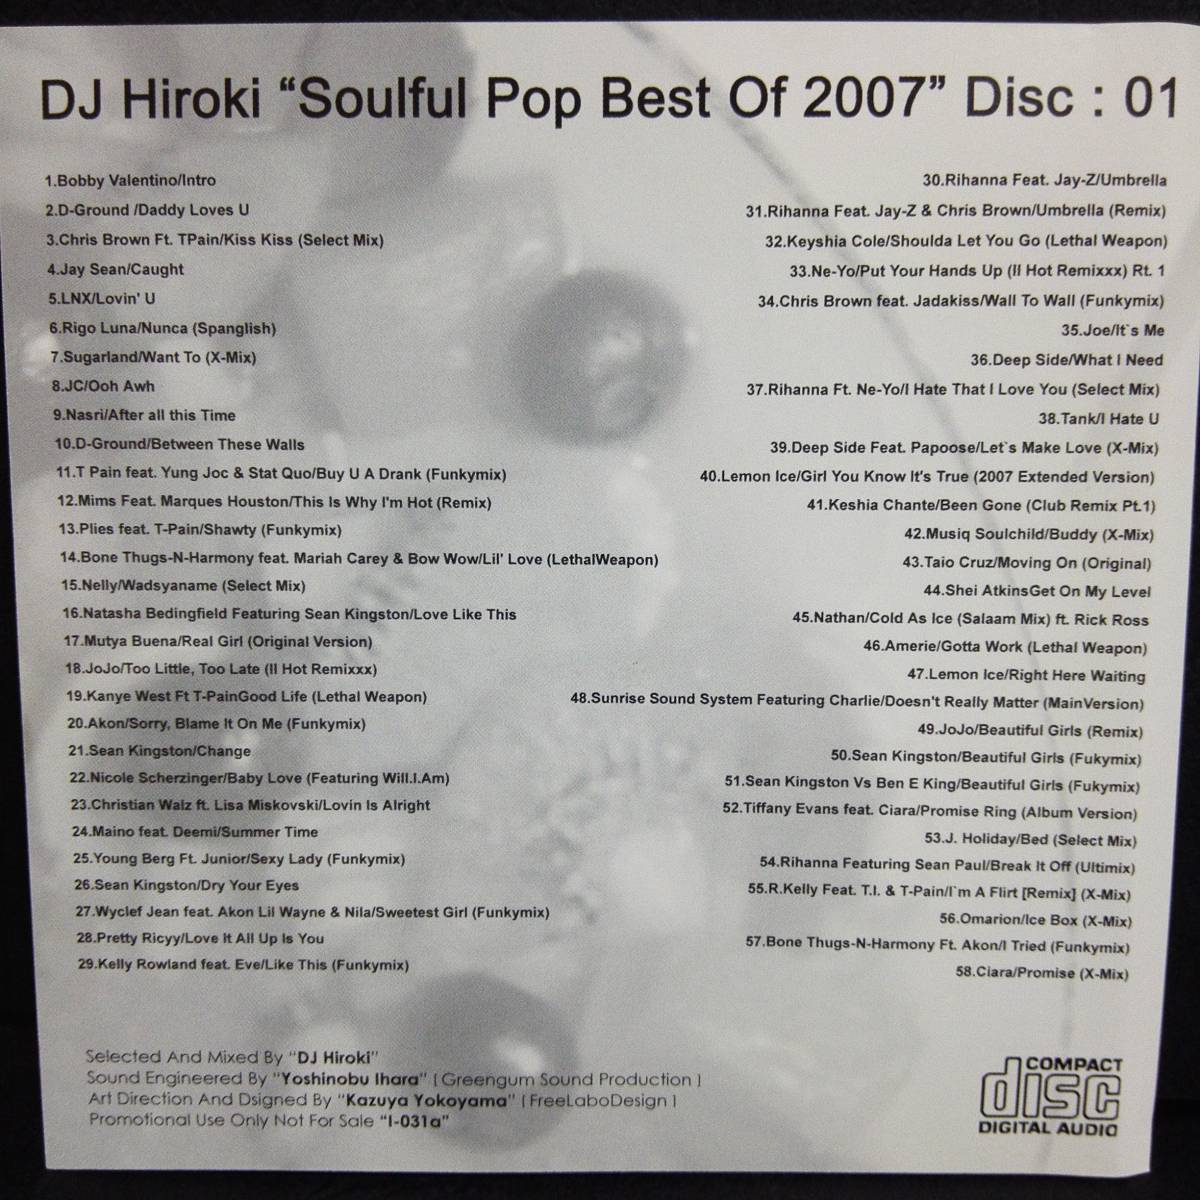 DJ HIROKI Soulful Pop BEST OF 2007 records out of production